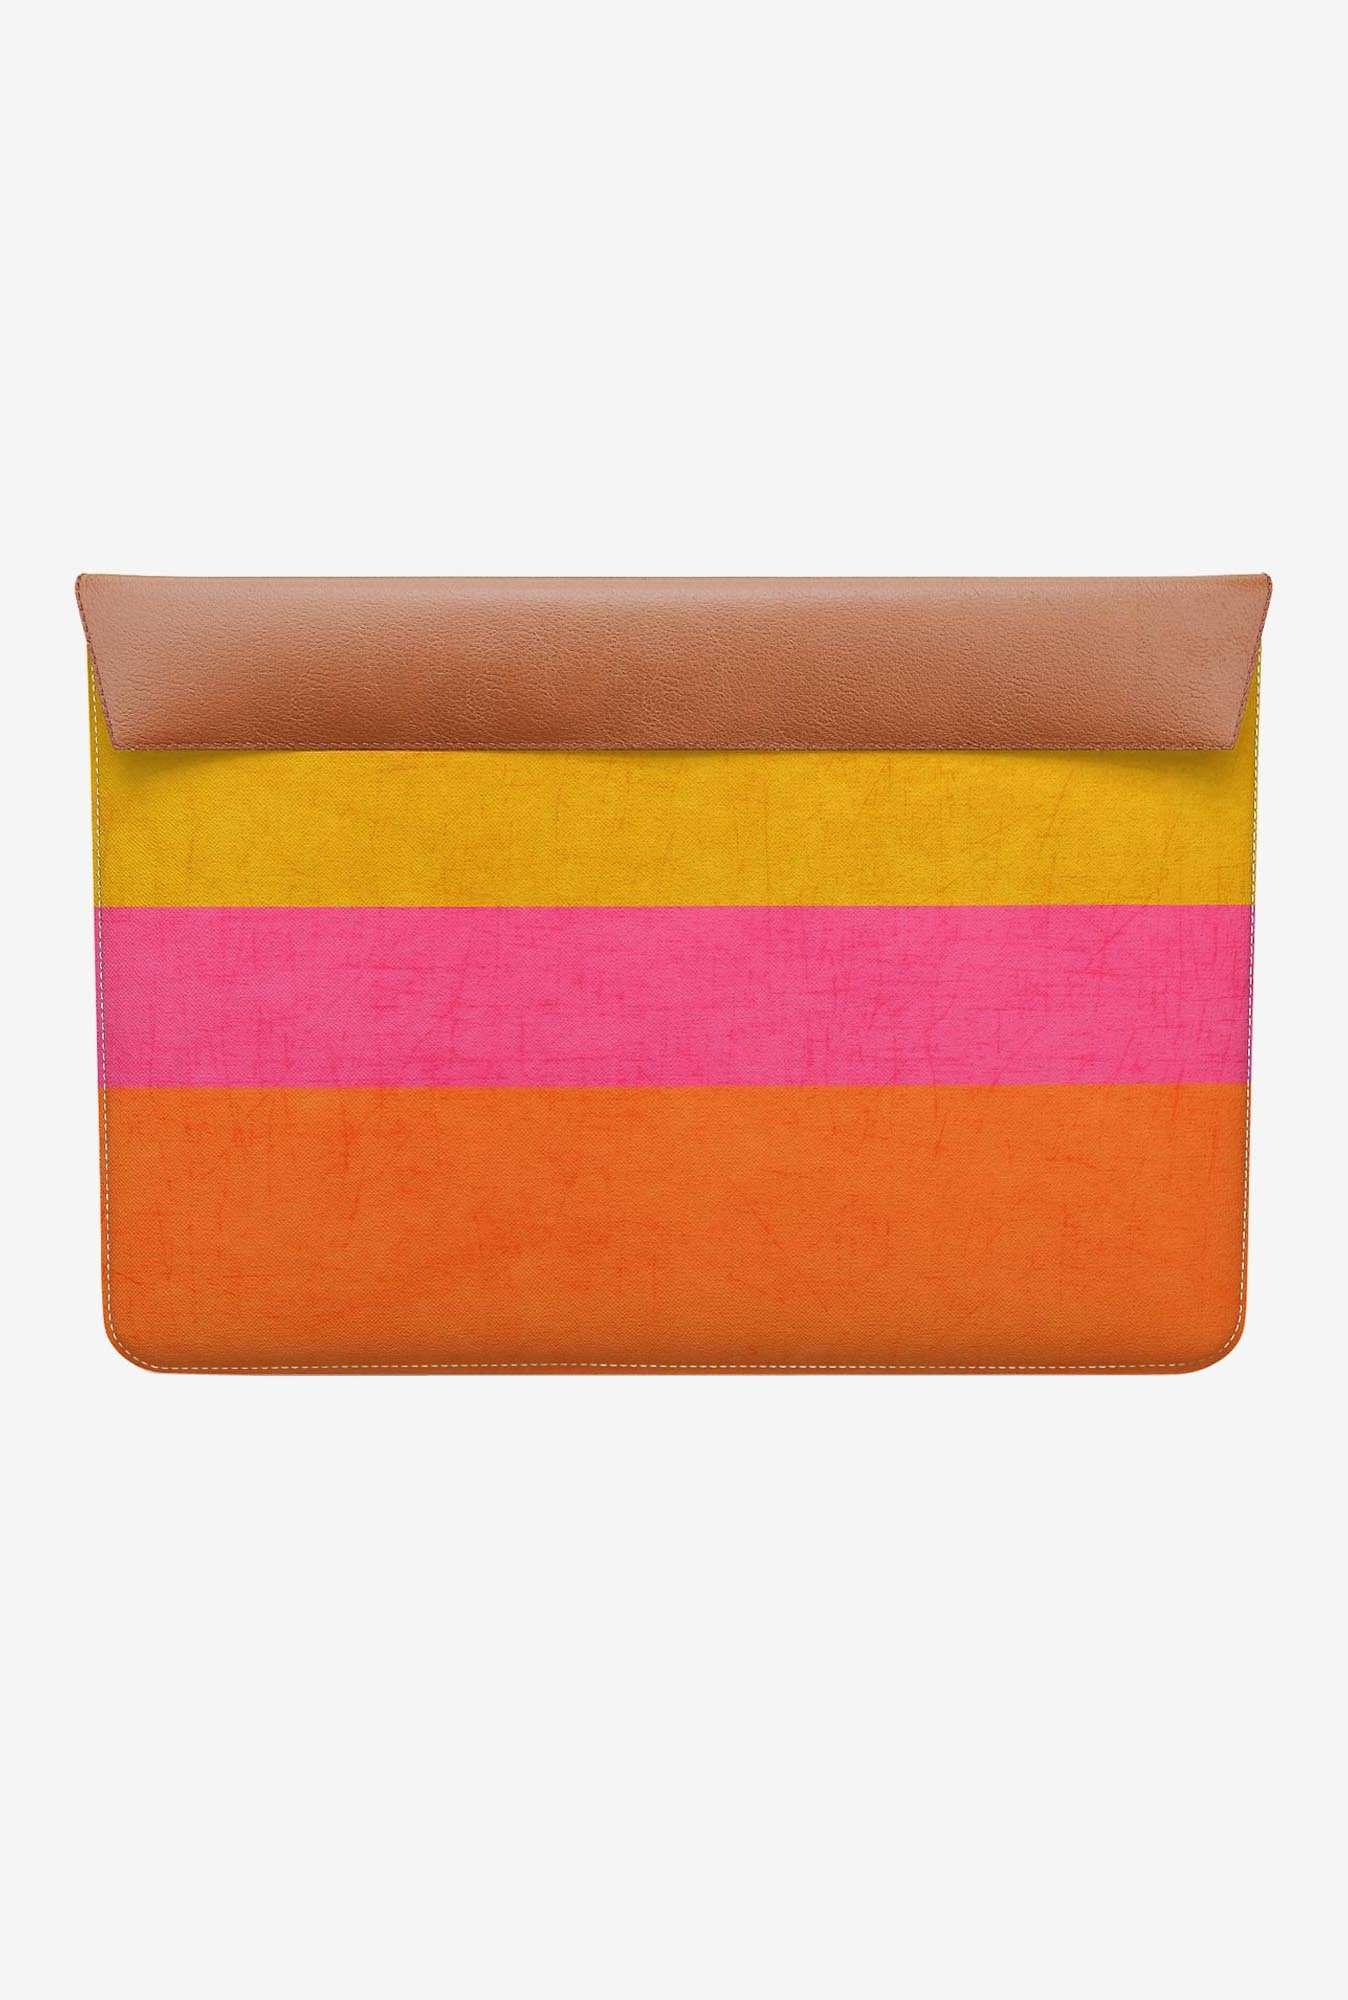 DailyObjects Summer Classic MacBook Air 11 Envelope Sleeve